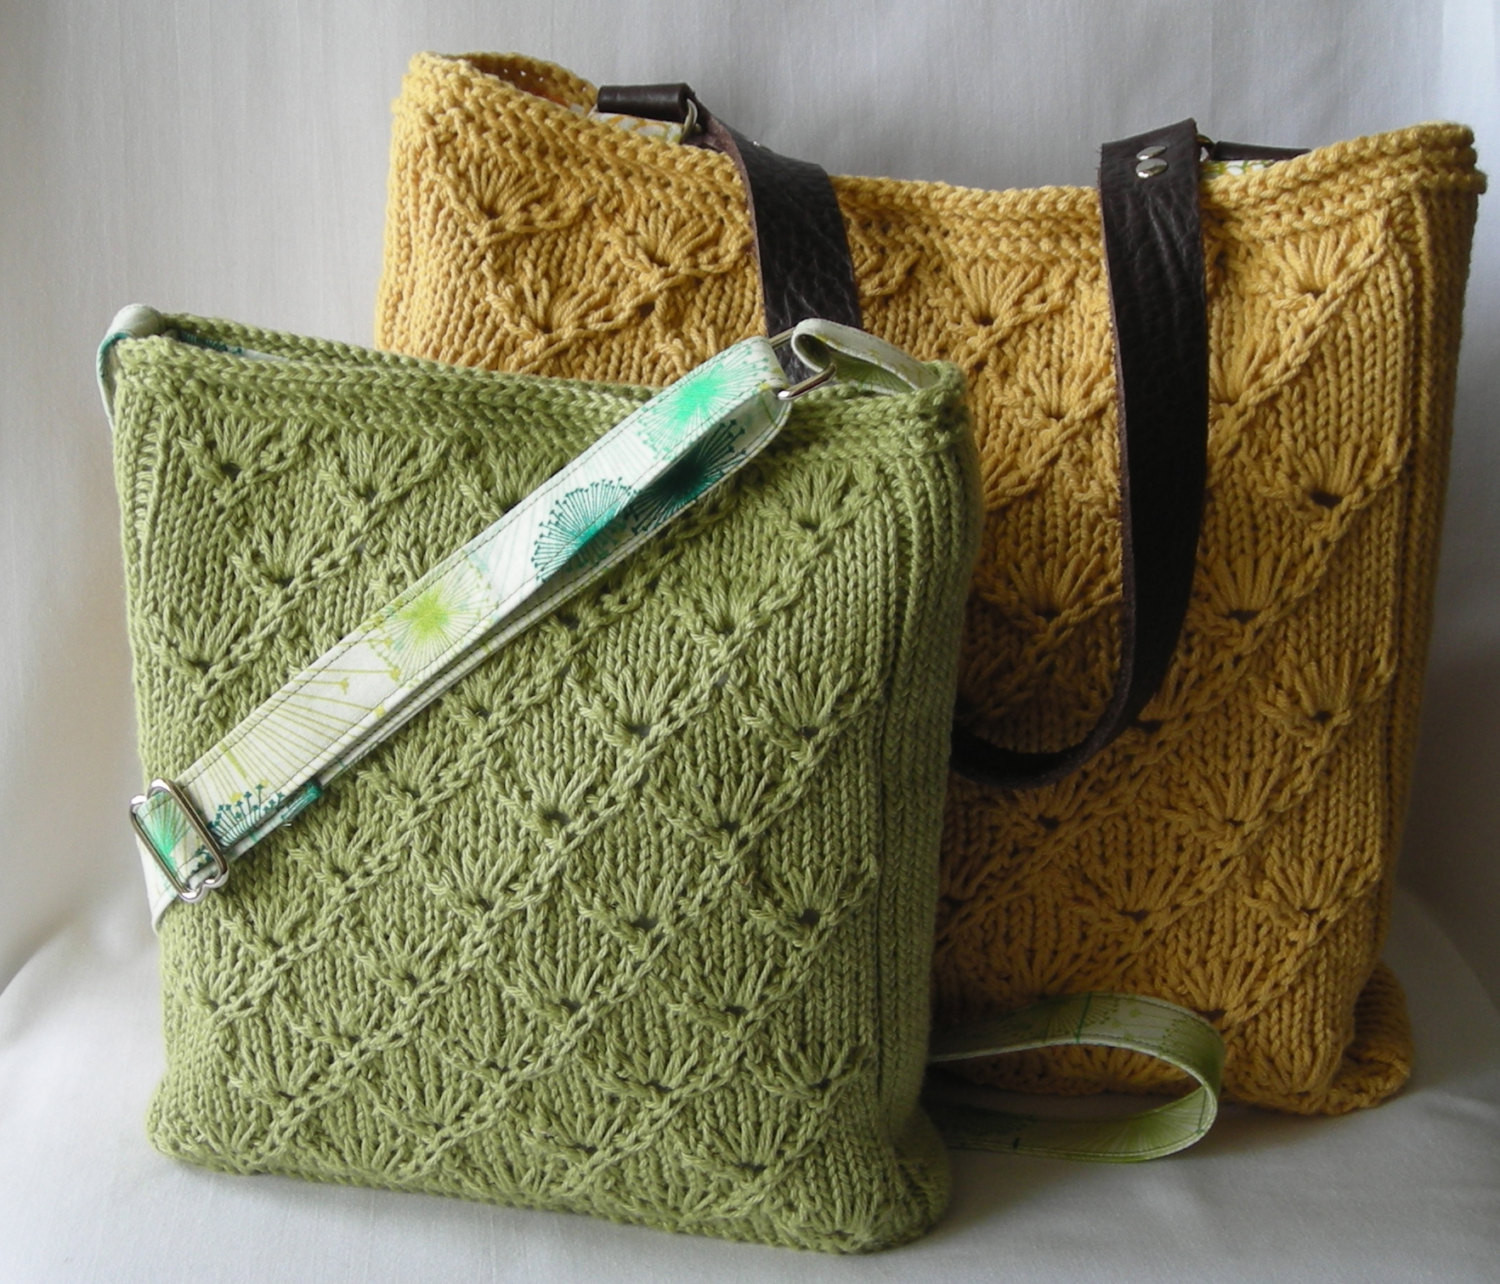 The Significance Knitting Bags Crochet and Knit